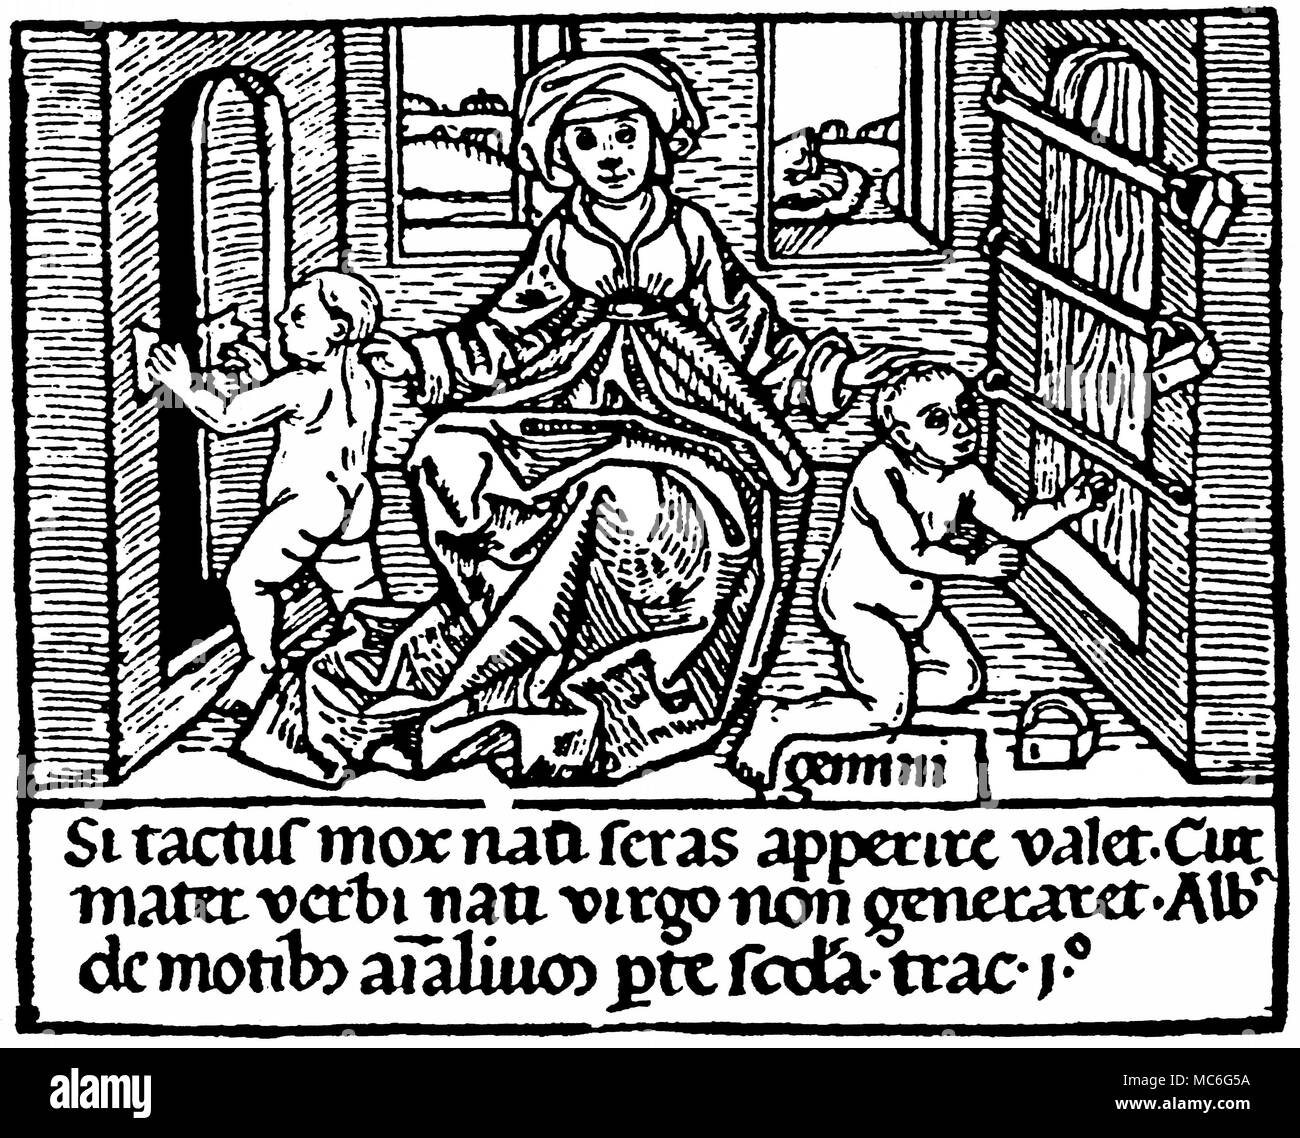 STRANGE PHENOMENA - CHRISTIANITY The 'miracle' of two children [hence the word Gemini, meaning Twins], born with the magnetic power sufficient to open locks.  The woodcut, illustrating this power, is a visual argument that if this may happen then why should not the miracle of the virgin birth also occur.  The quotation is from Albertus Magnus, De Motibus Animalium.   Woodcut from Franciscus de Retza, Defensorium inviolatae virginitas Mariae, 1471. - Stock Image